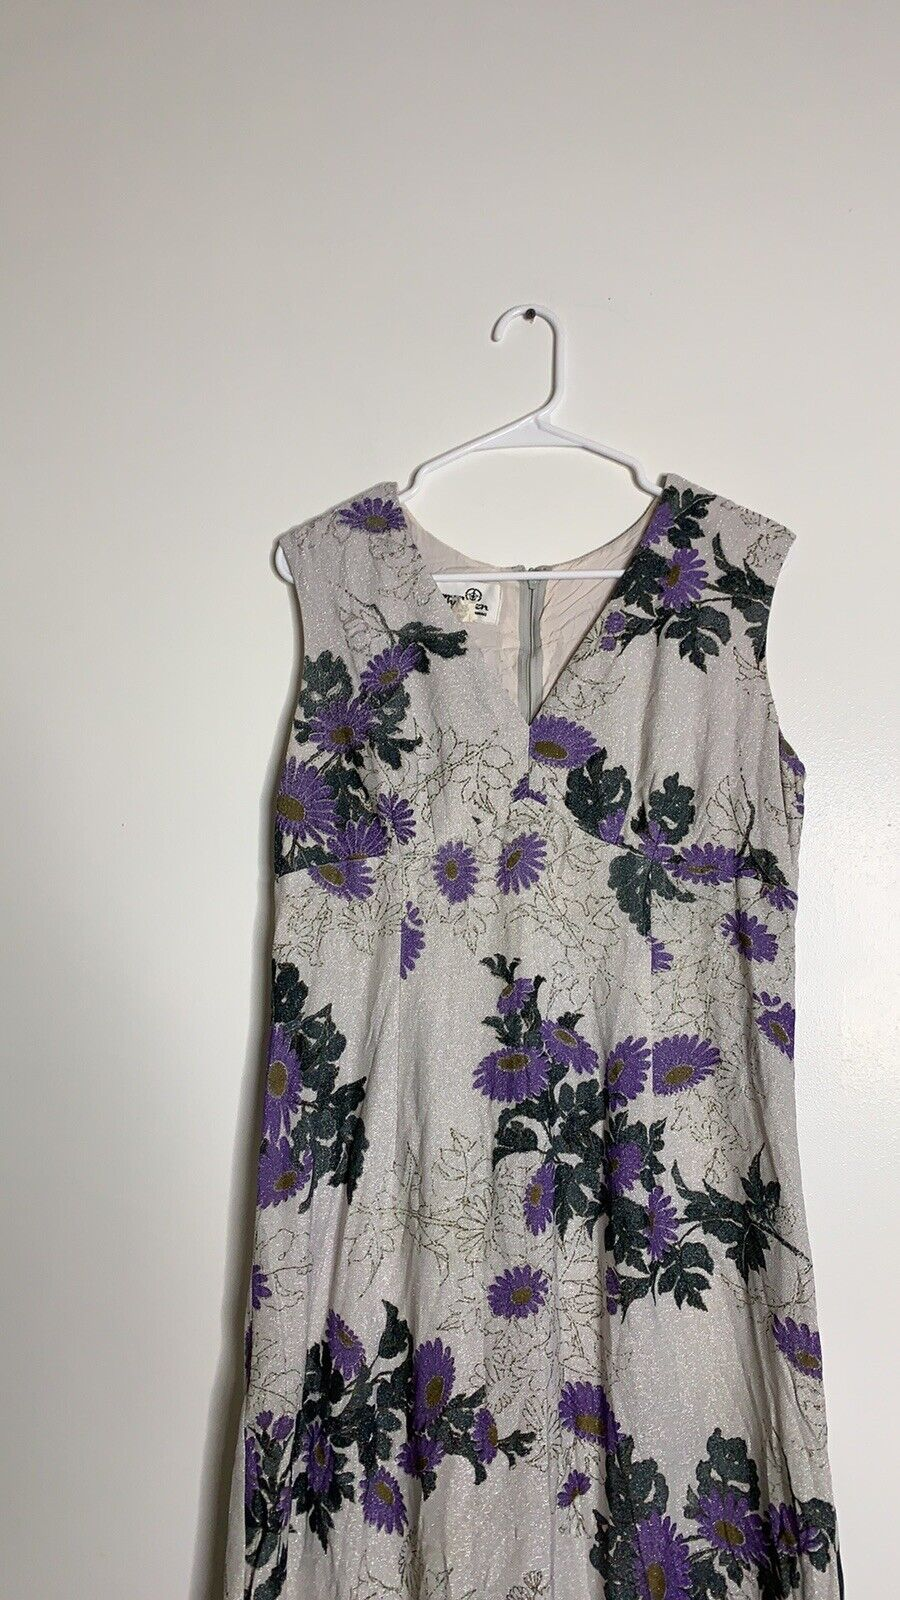 Vintage Alfred Shaheen Daisy Dress - image 3